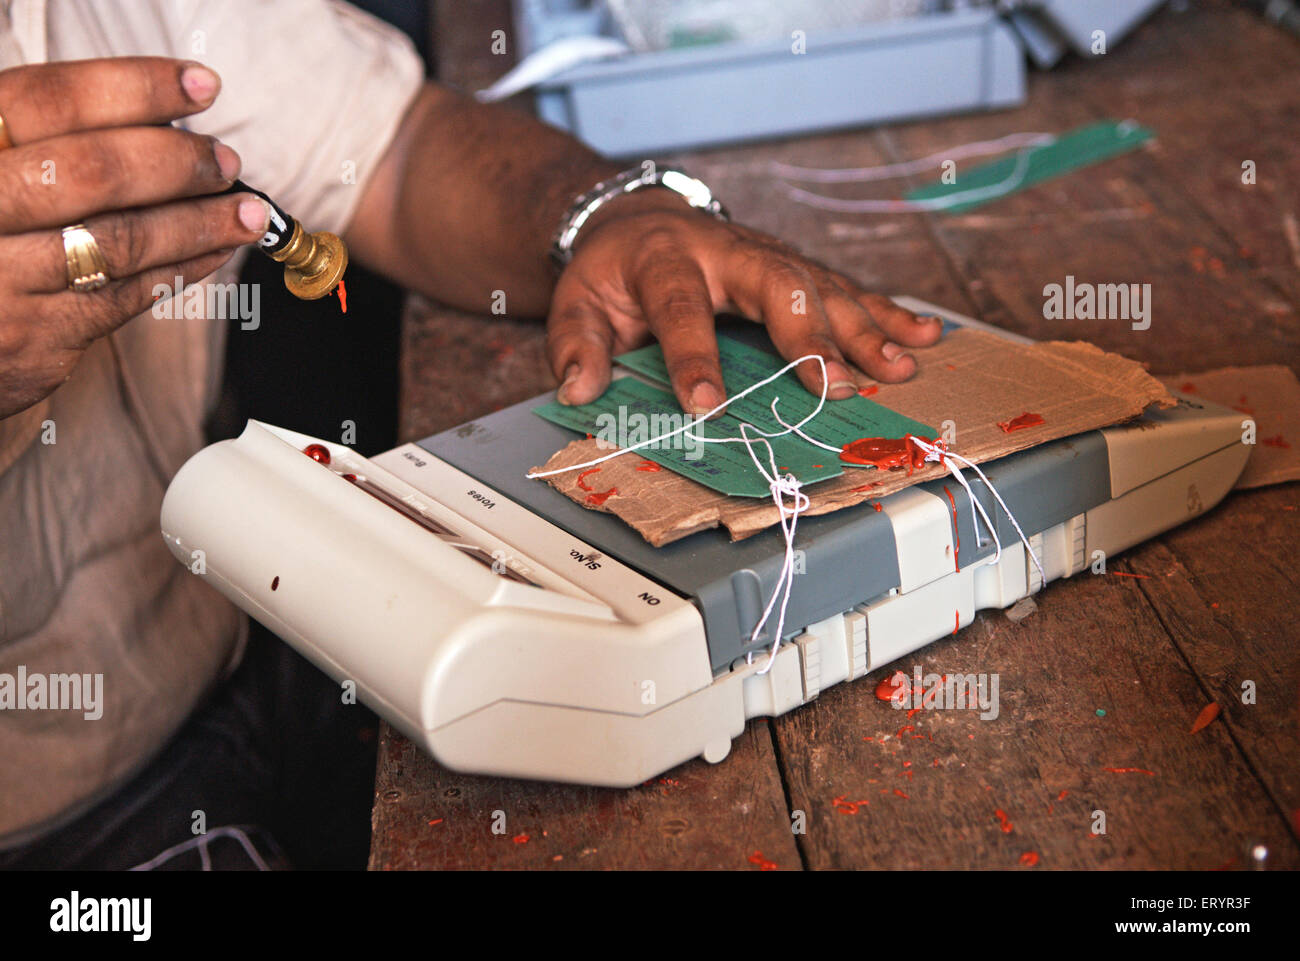 Government staff put election commission seal on control unit of electronic voting machine ; Bombay - Stock Image